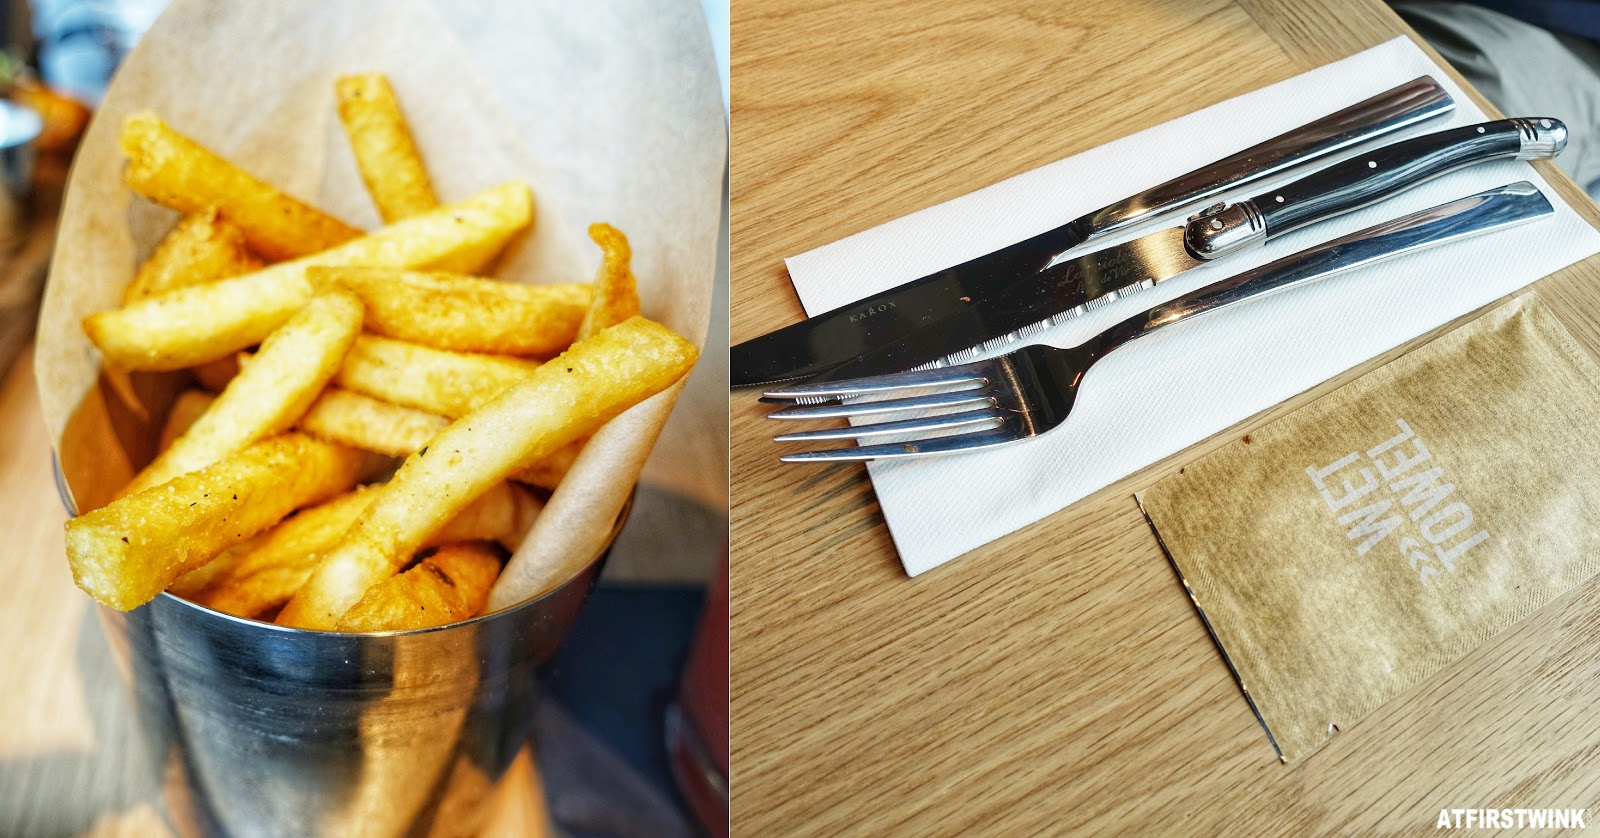 tgi fridays utrecht classic fries cutlery wet tissue